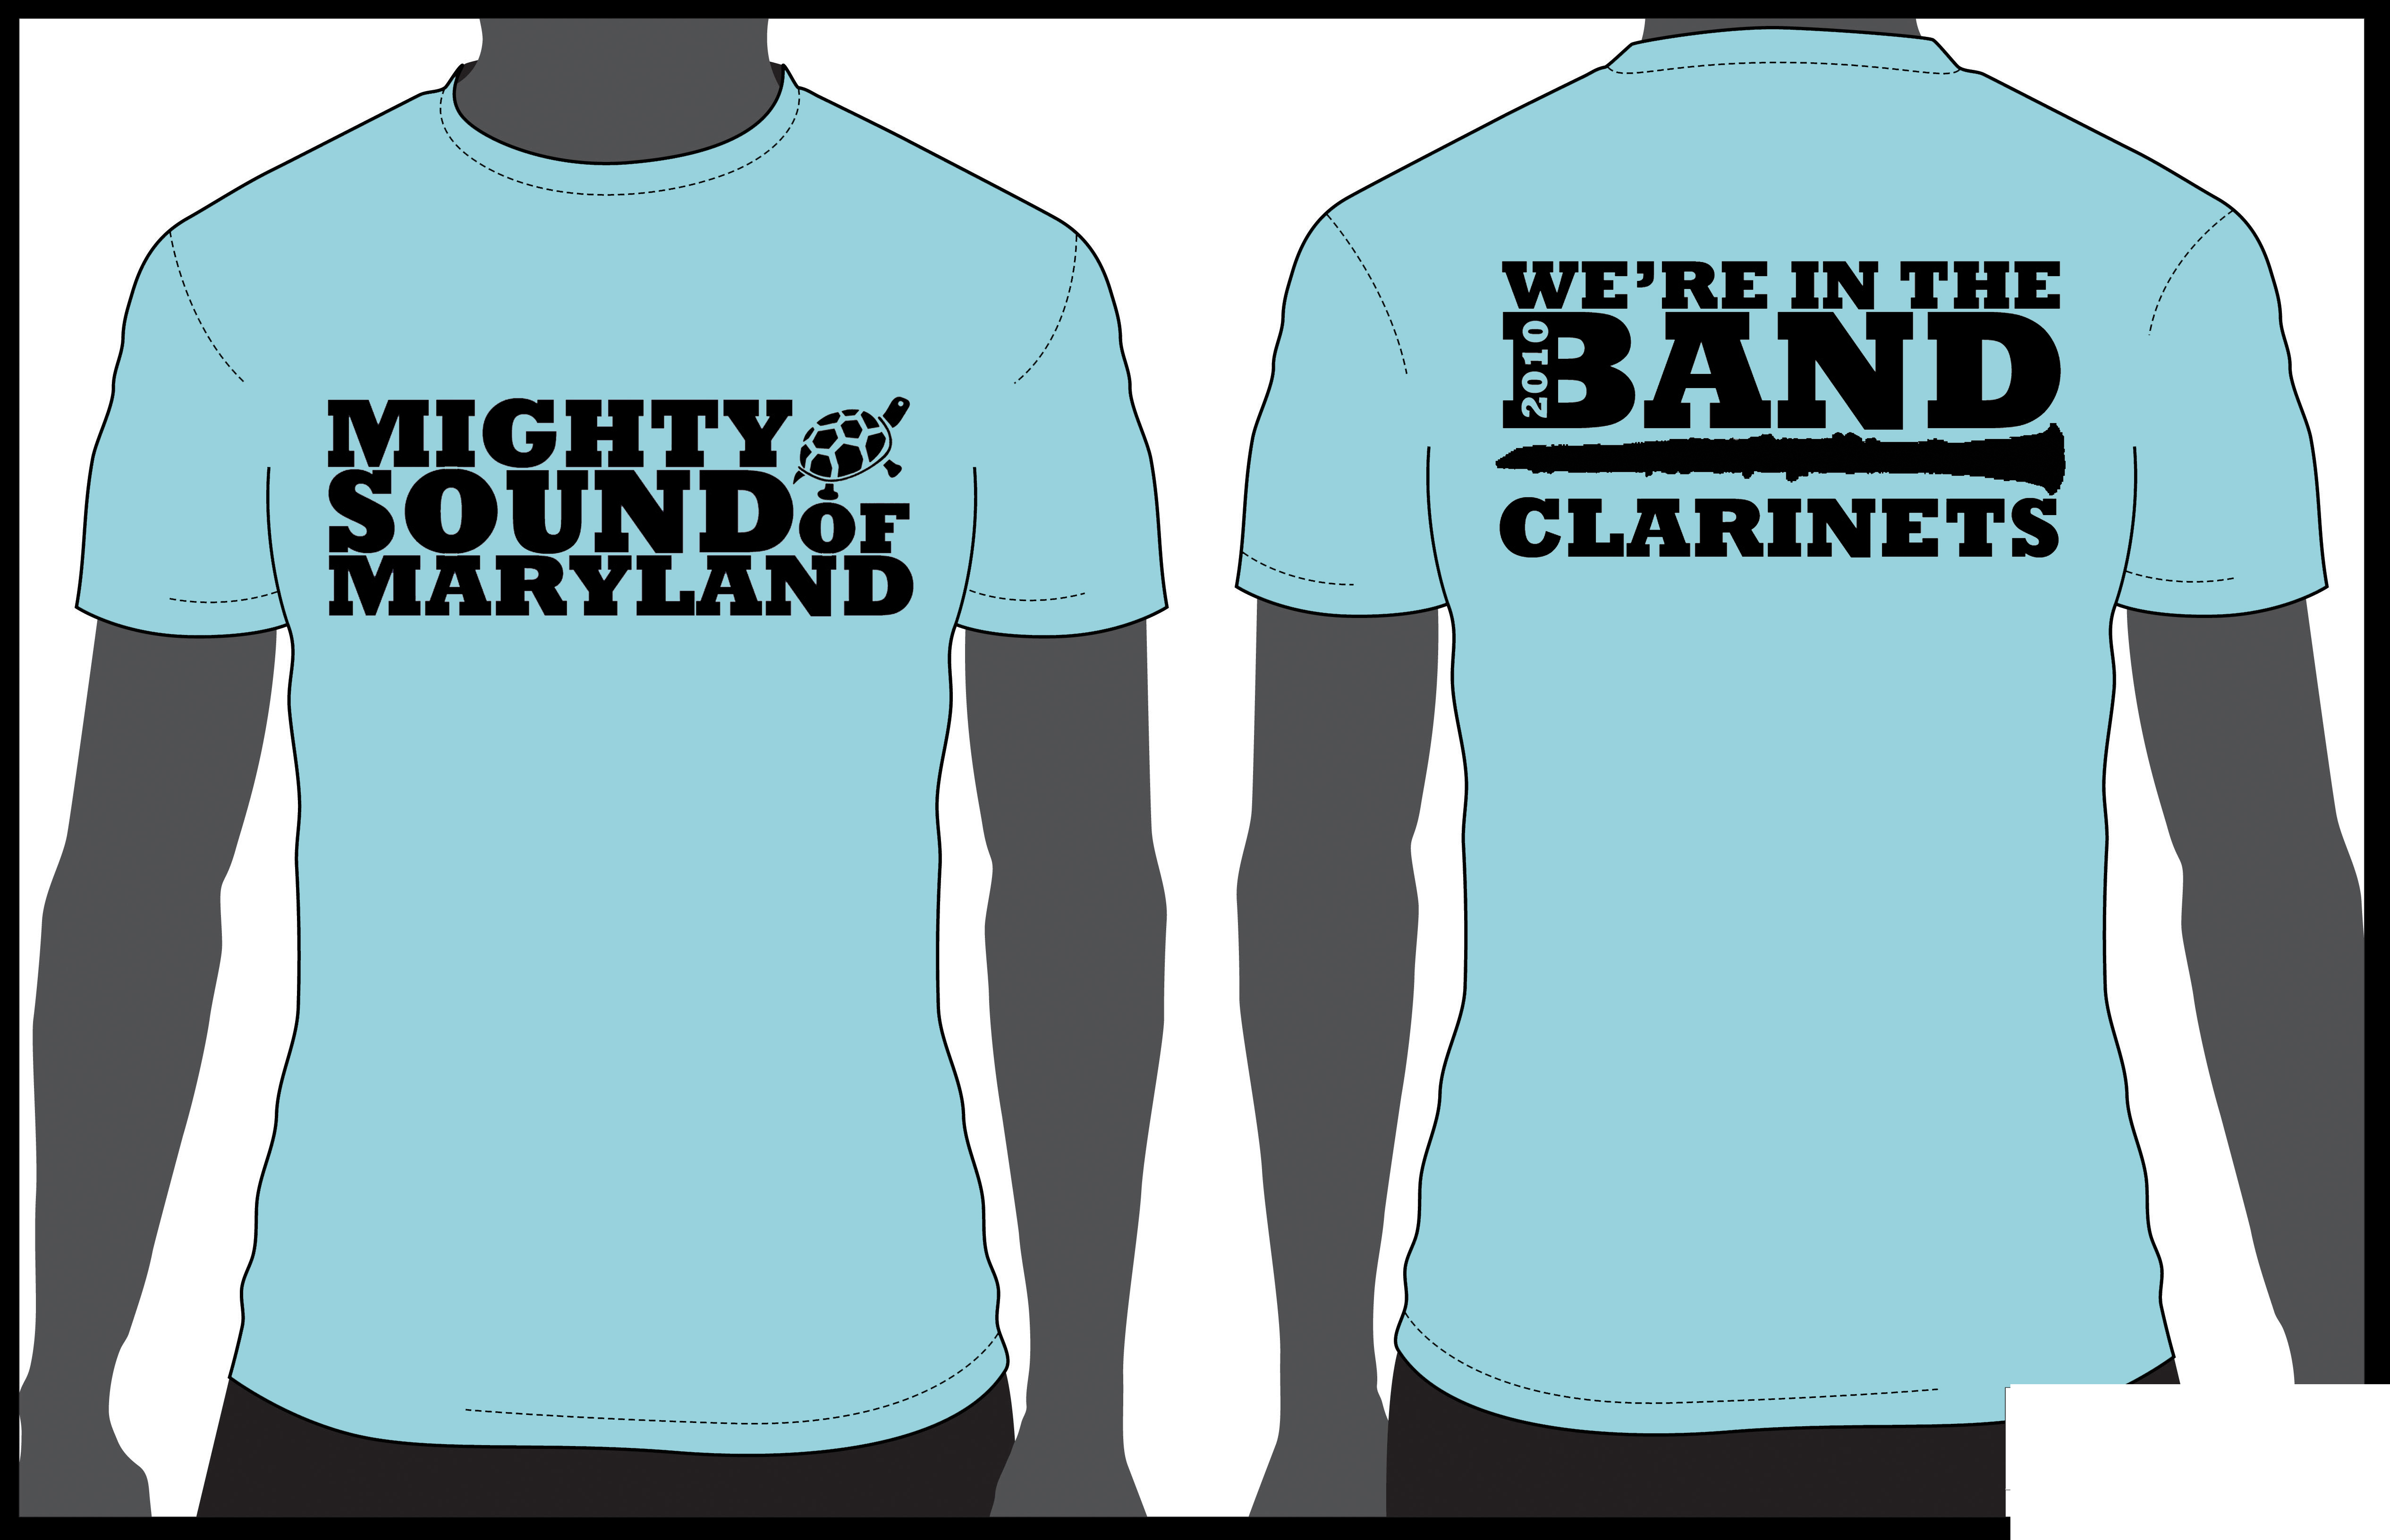 Design t shirt university - Clarinet Shirt T Shirt Design For The Clarinet Section Of The Mighty Sound Of Maryland At The University Of Maryland